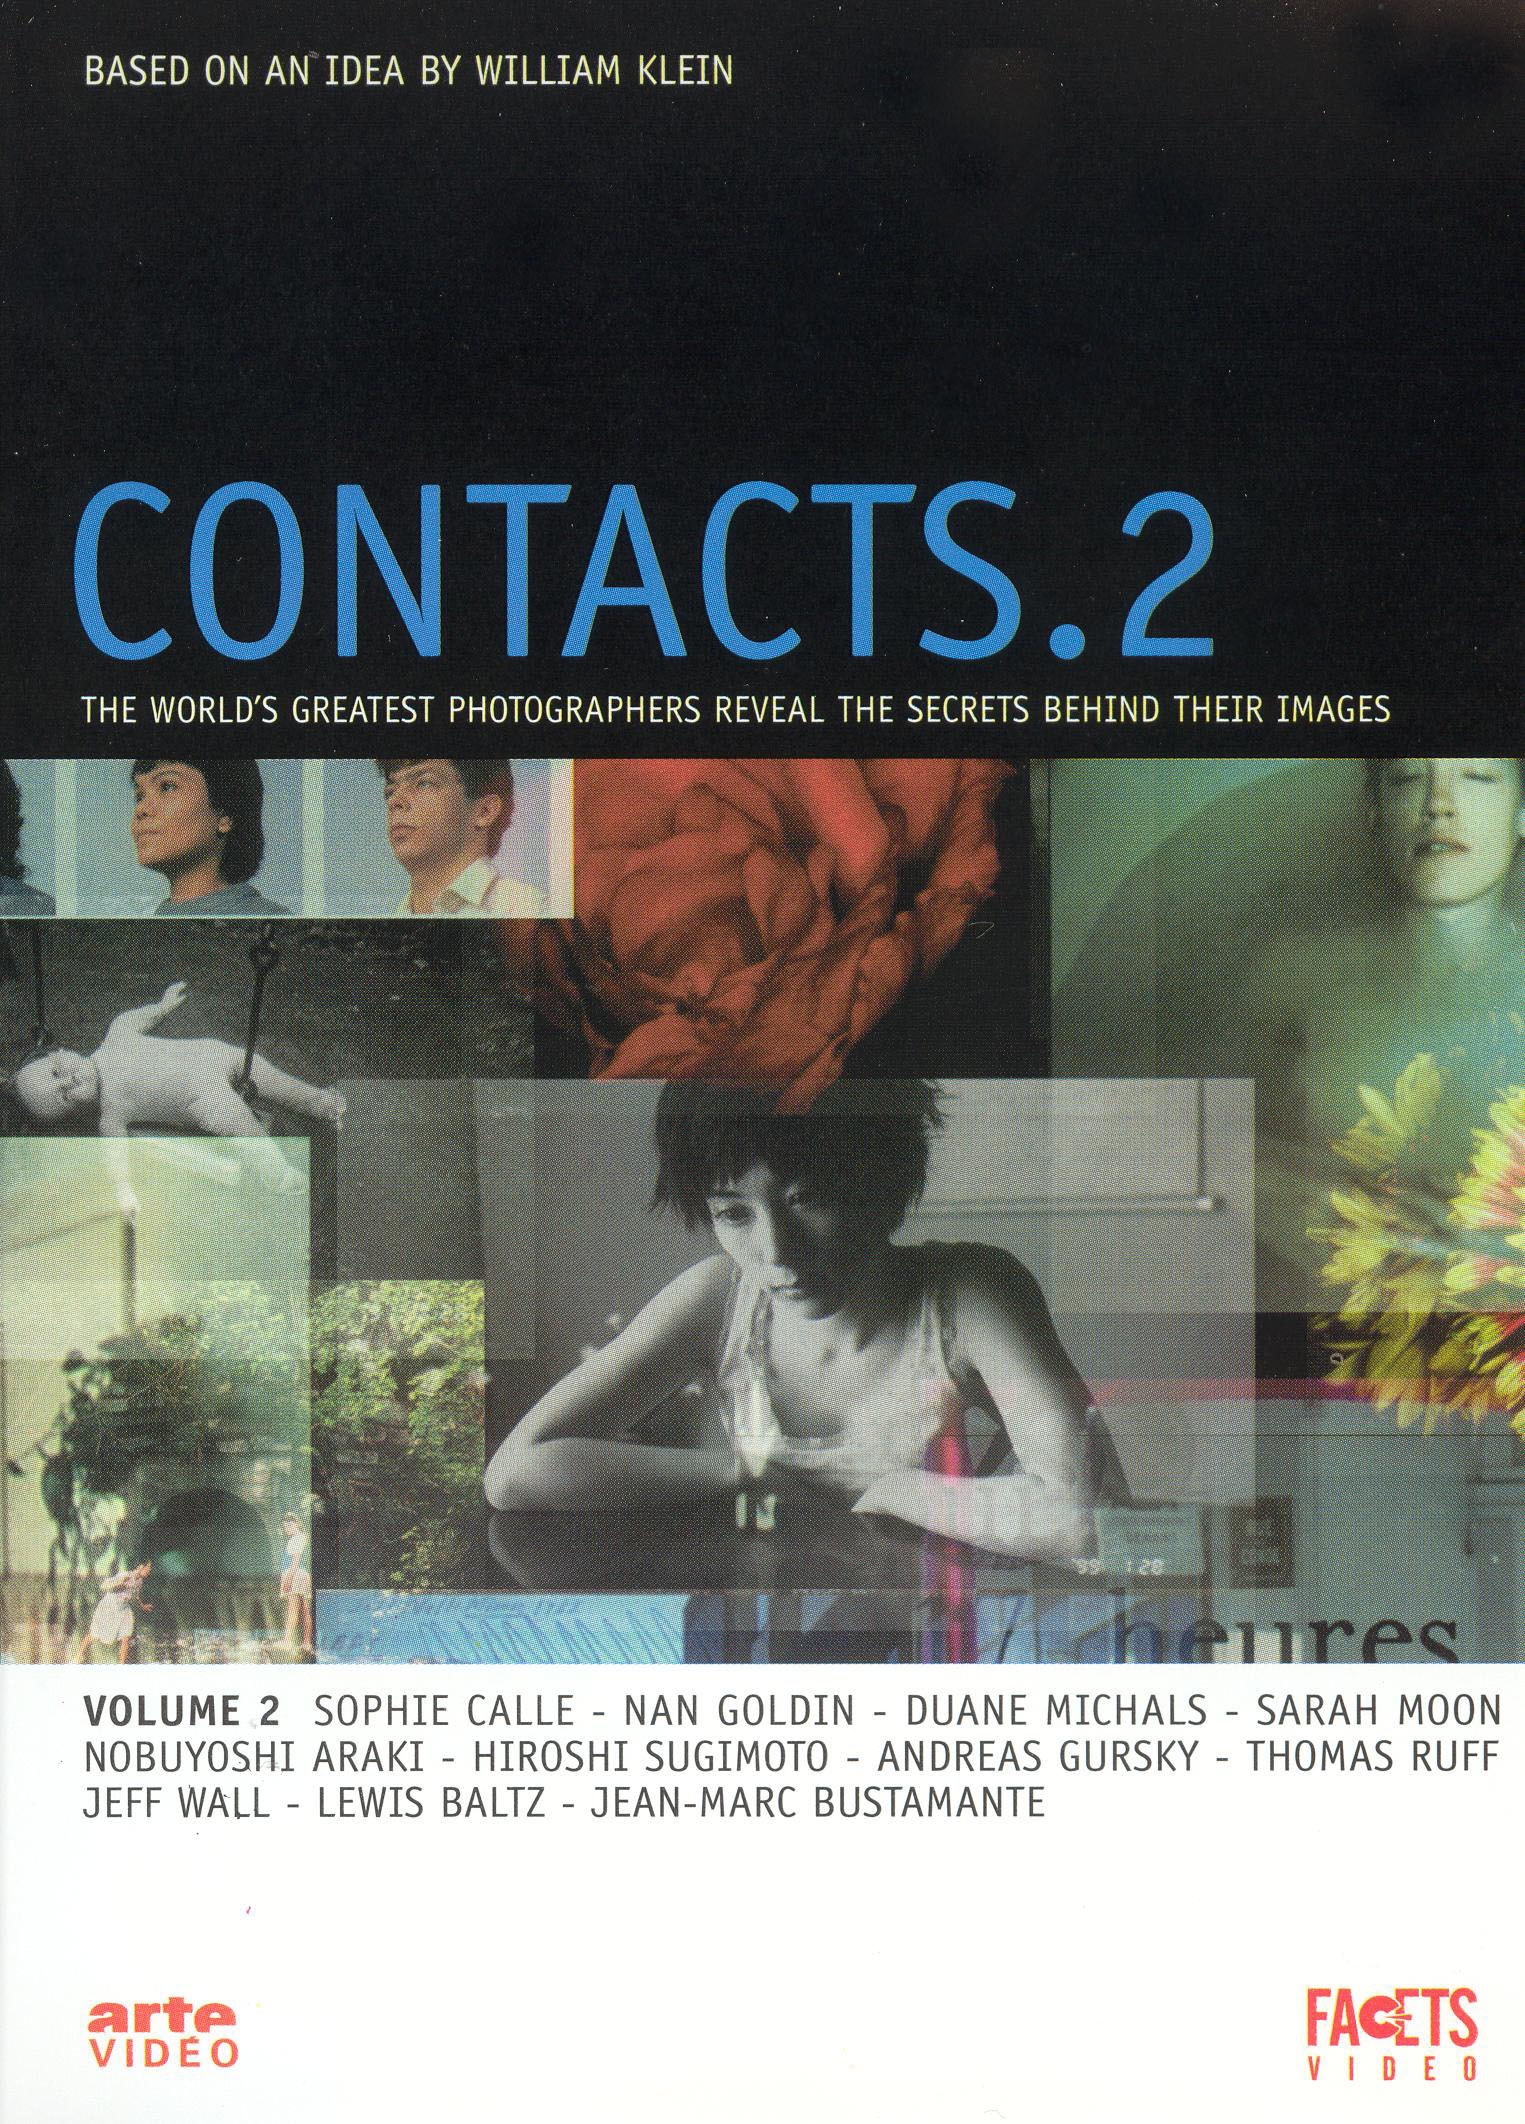 Contacts, Vol. 2: The Renewal of Contemporary Photojournalism